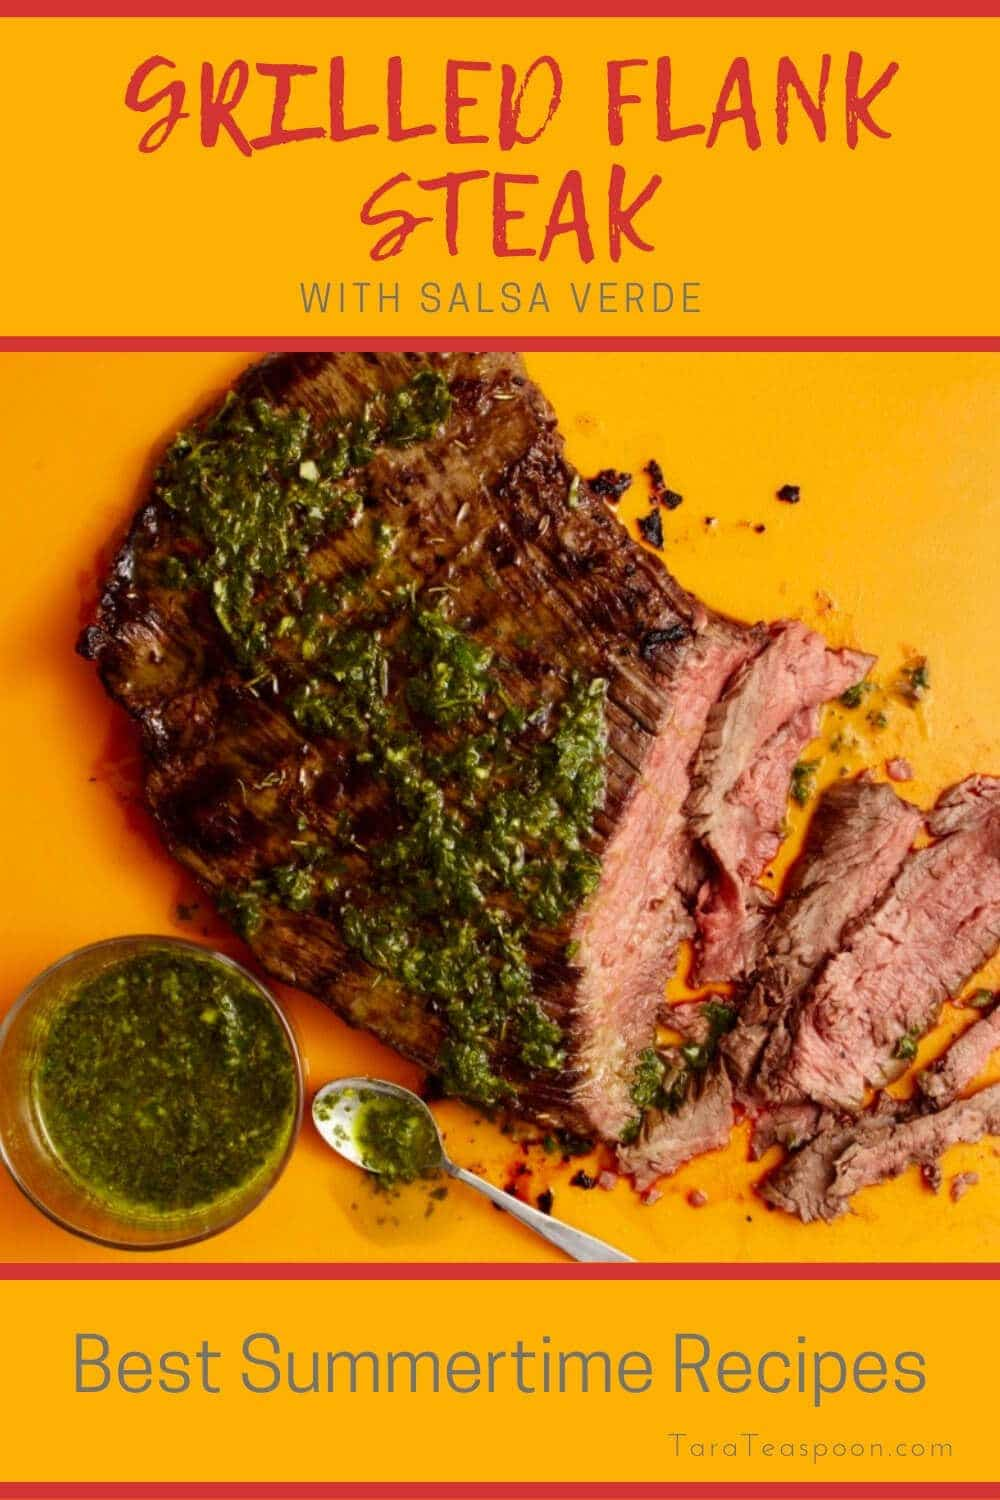 Grilled flank steak and green salsa on orange board